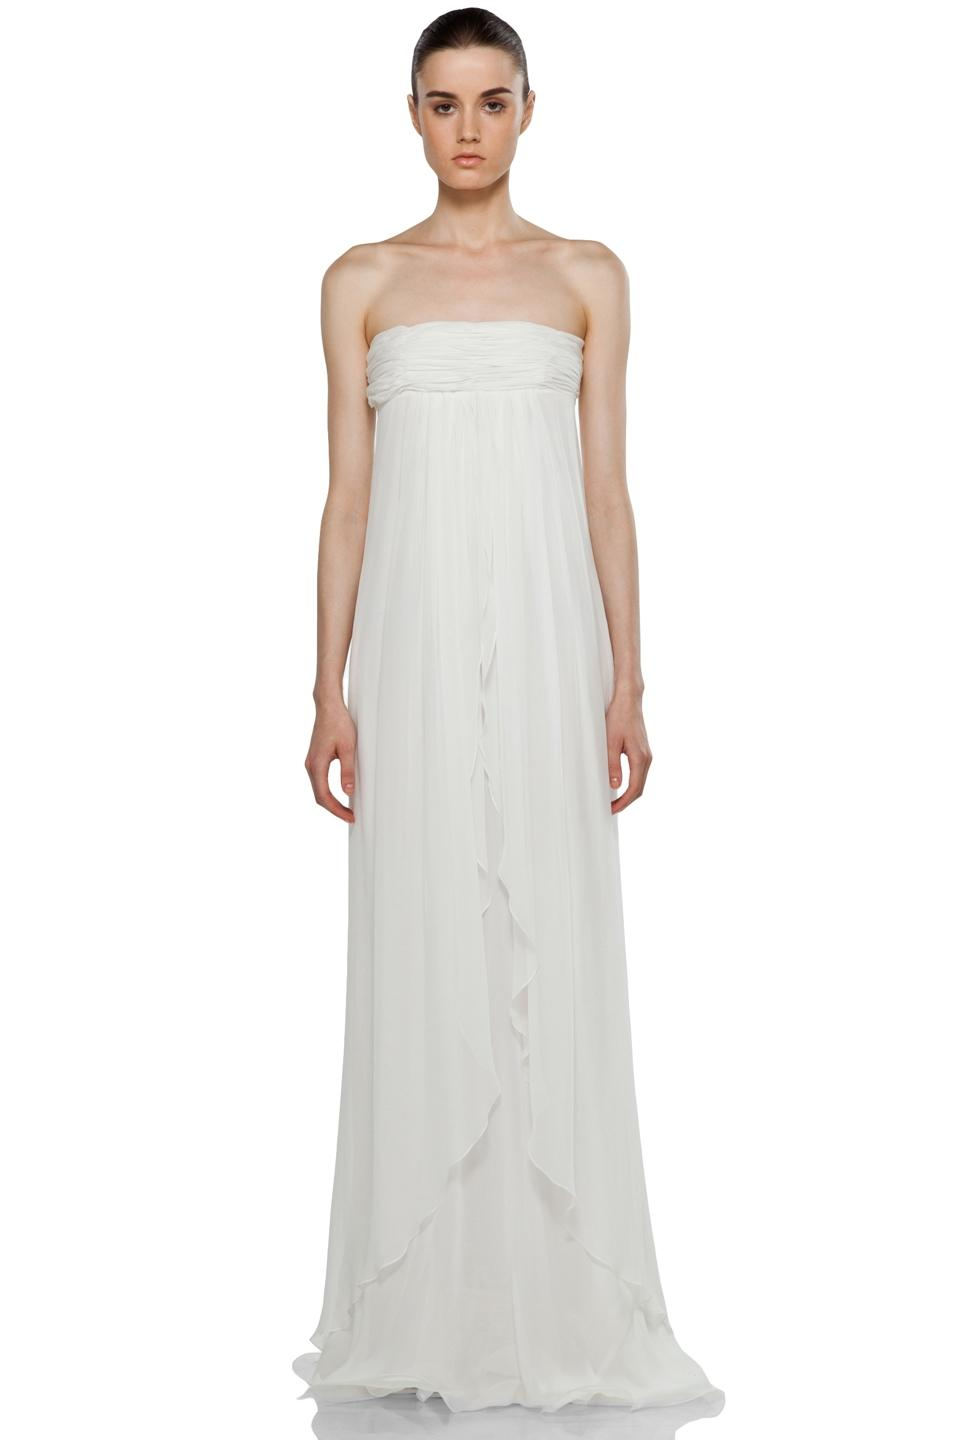 Rachel Zoe Cream Silk Elle Empire Petal Destination Wedding Dress Size 6  (S) ...